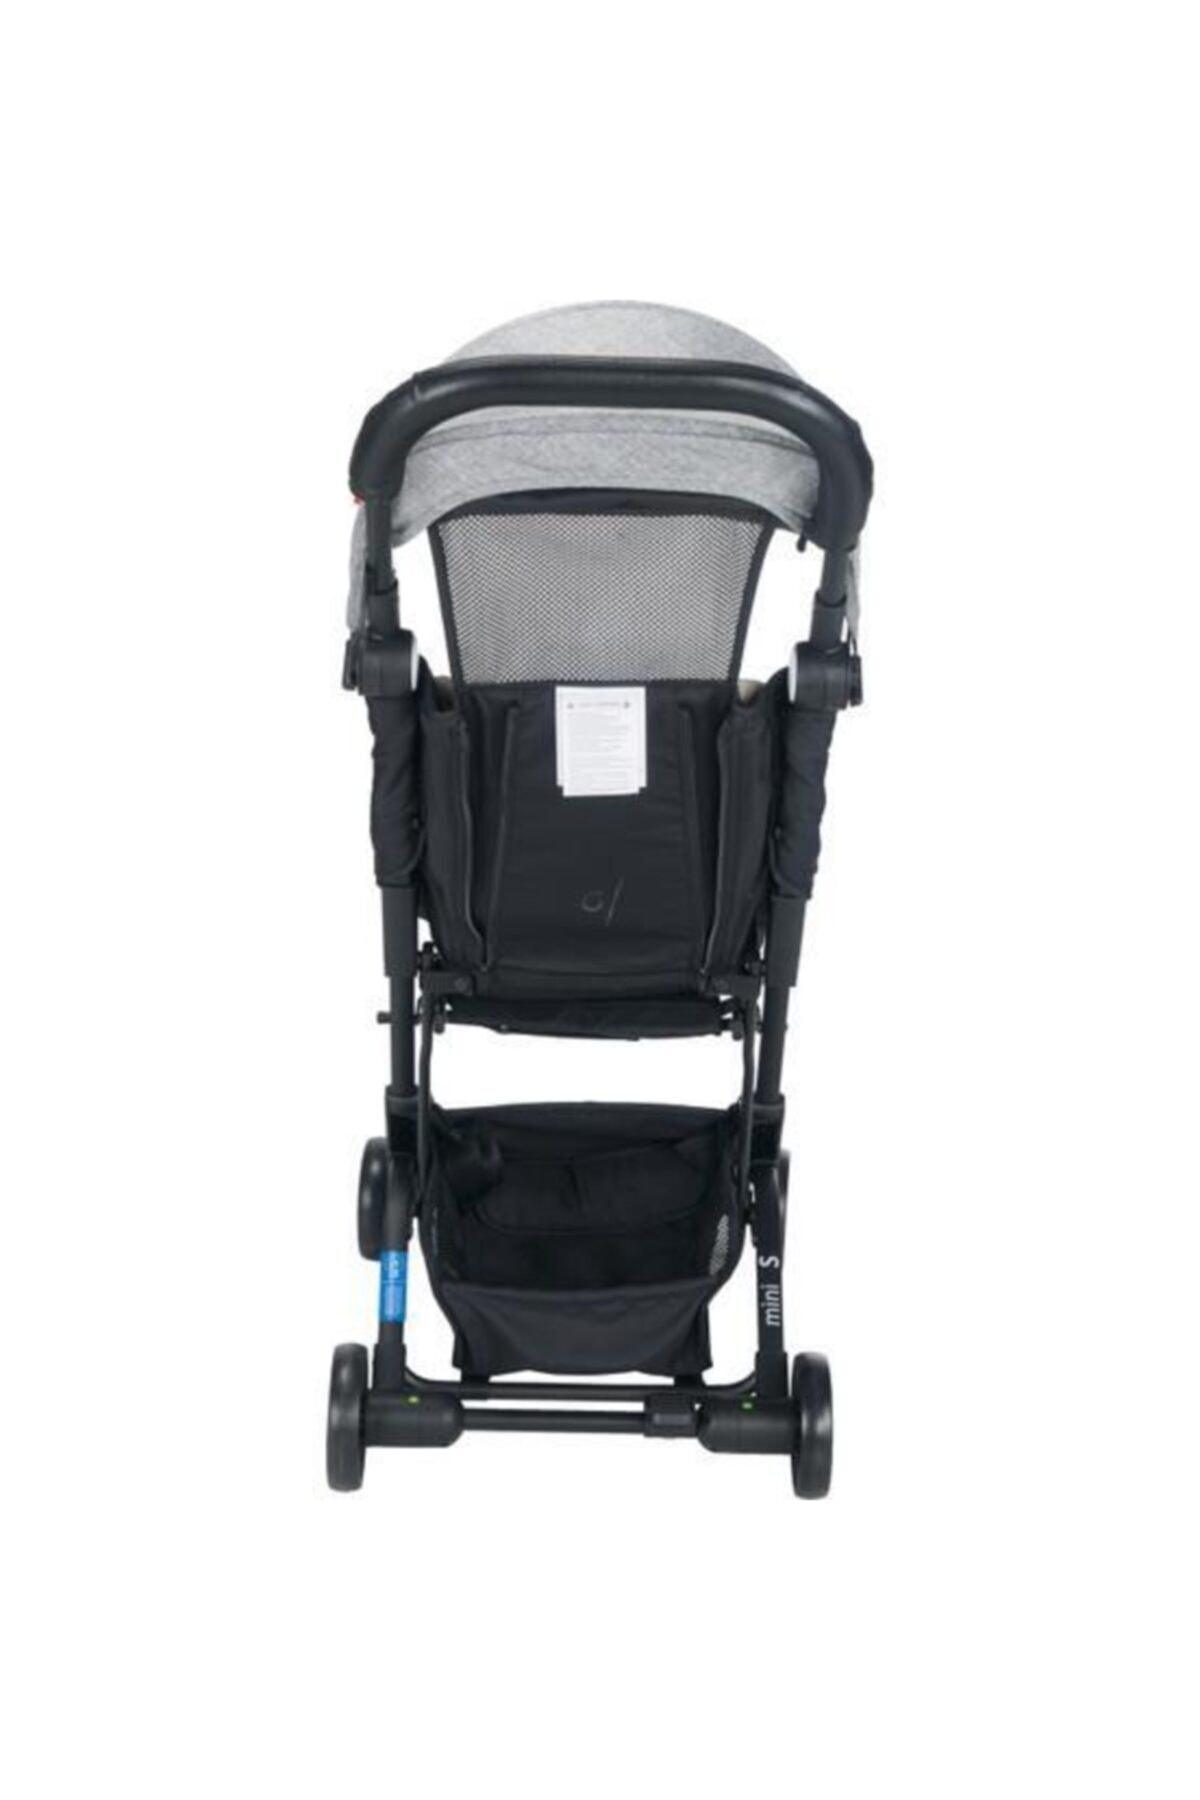 Baby stroller Compact design stroller quality car luxury stroller Bebk stroller with hand luggage on plane in folded state enlarge